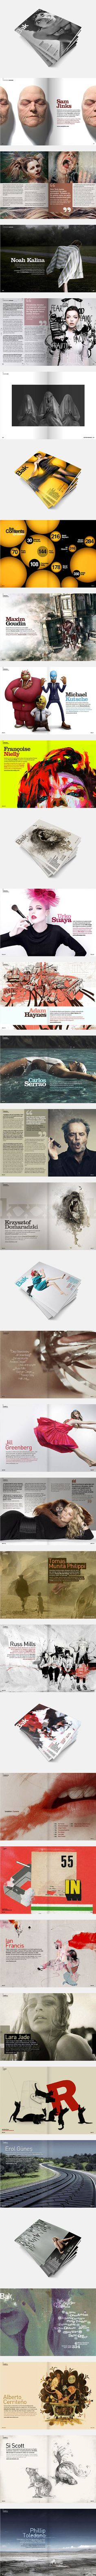 Bak Magazine on Behance